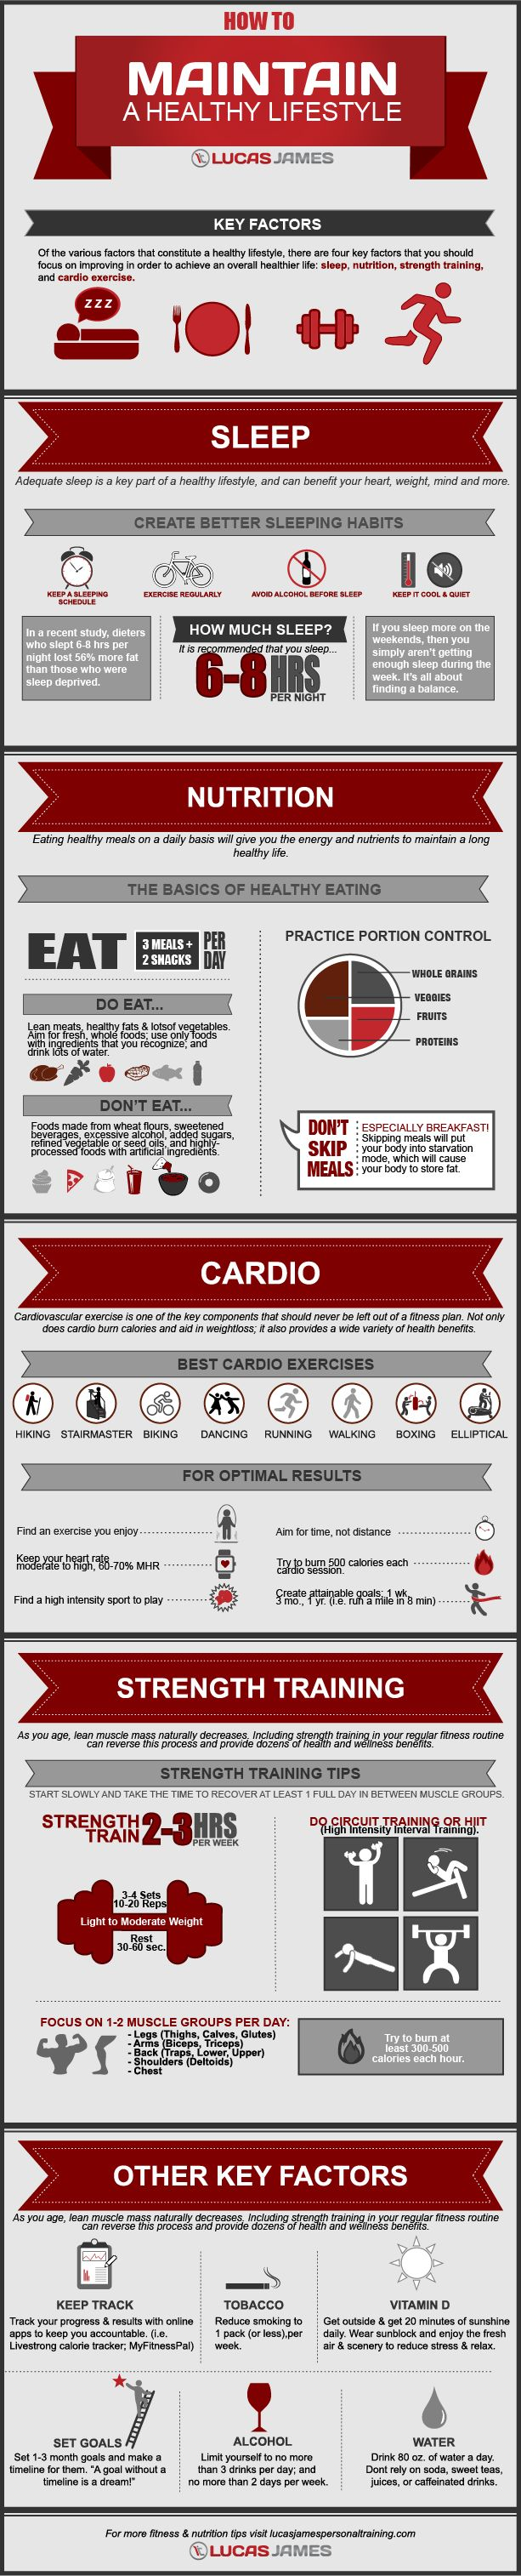 Many things can have a positive (or negative) impact on a healthy lifestyle. Out of all the multiple factors that can contribute to a healthy lifestyle, there are four key ingredients that one should focus on improving in order to enjoy a healthier life. These are centered around sleep, nutrition, cardio exercise, and strength training. The following infographic from Lucas James Celebrity Trainer breaks it all down for you in visual format.